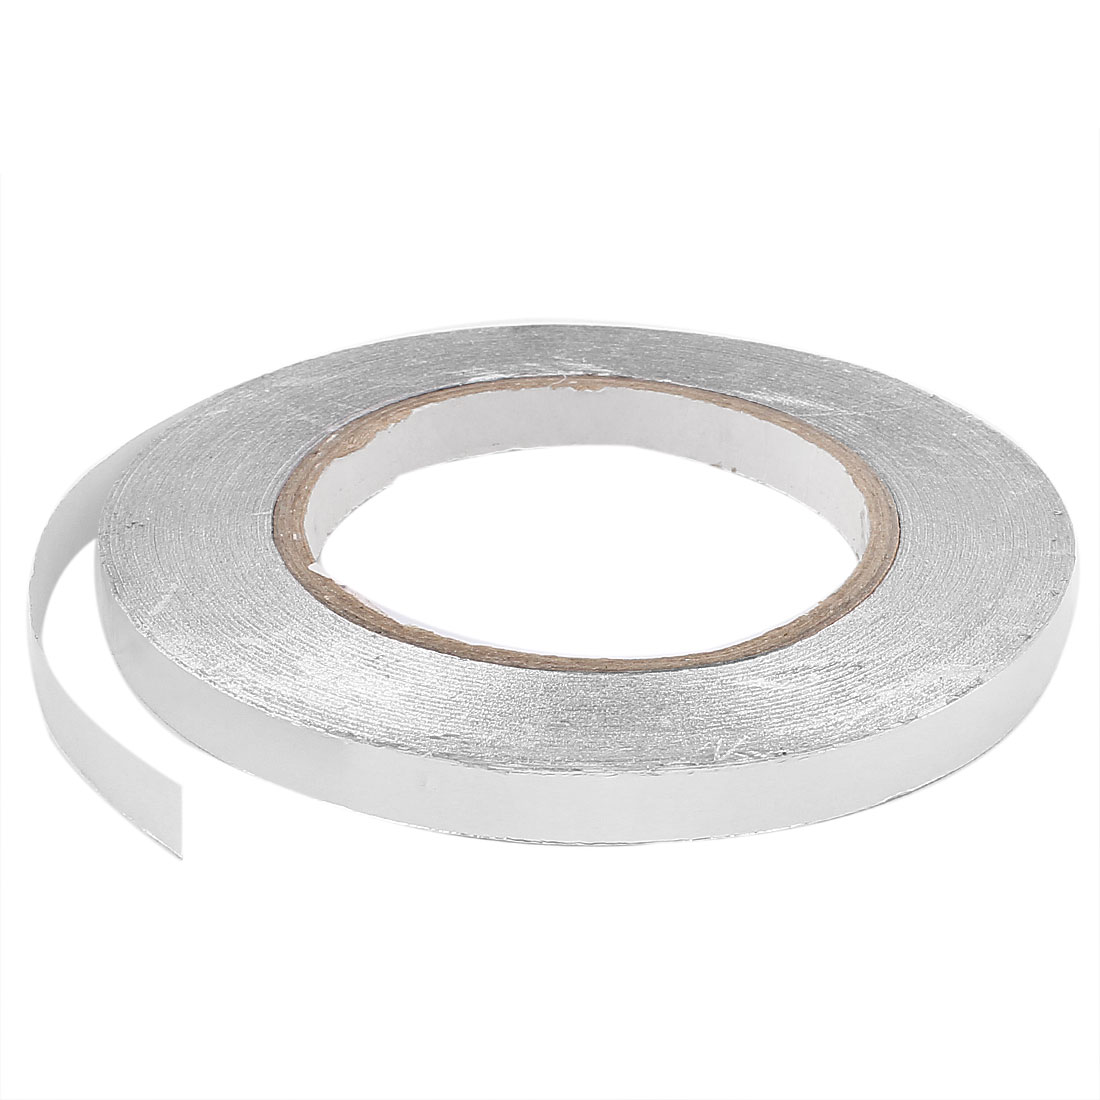 10mm x 50m Roll Aluminium Foil Heating Duct Adhesive Sealing Tape